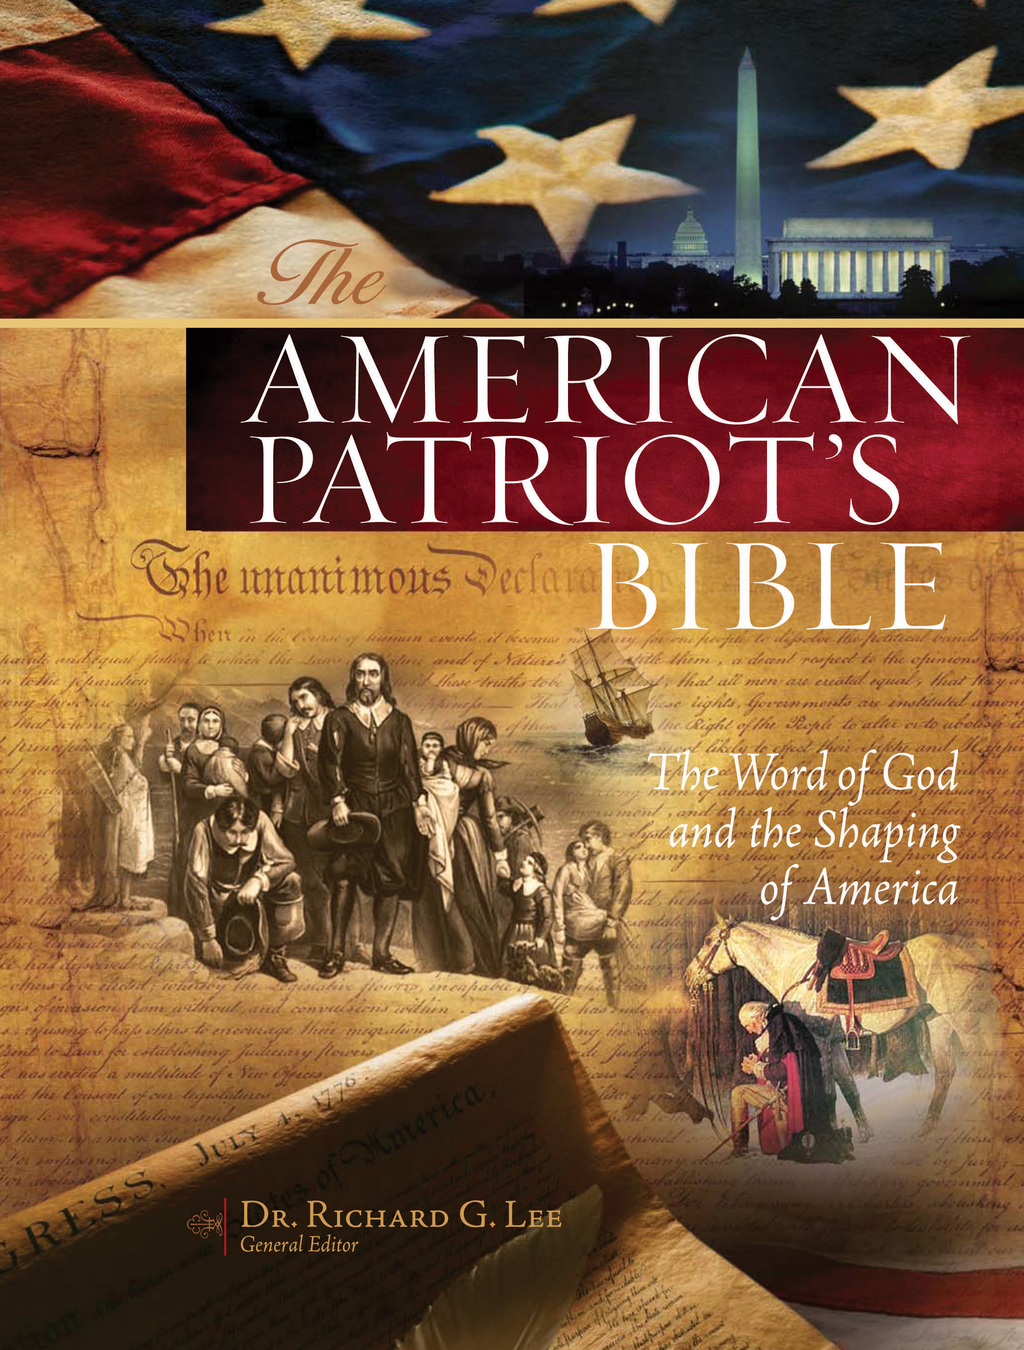 NKJV American Patriot's Bible